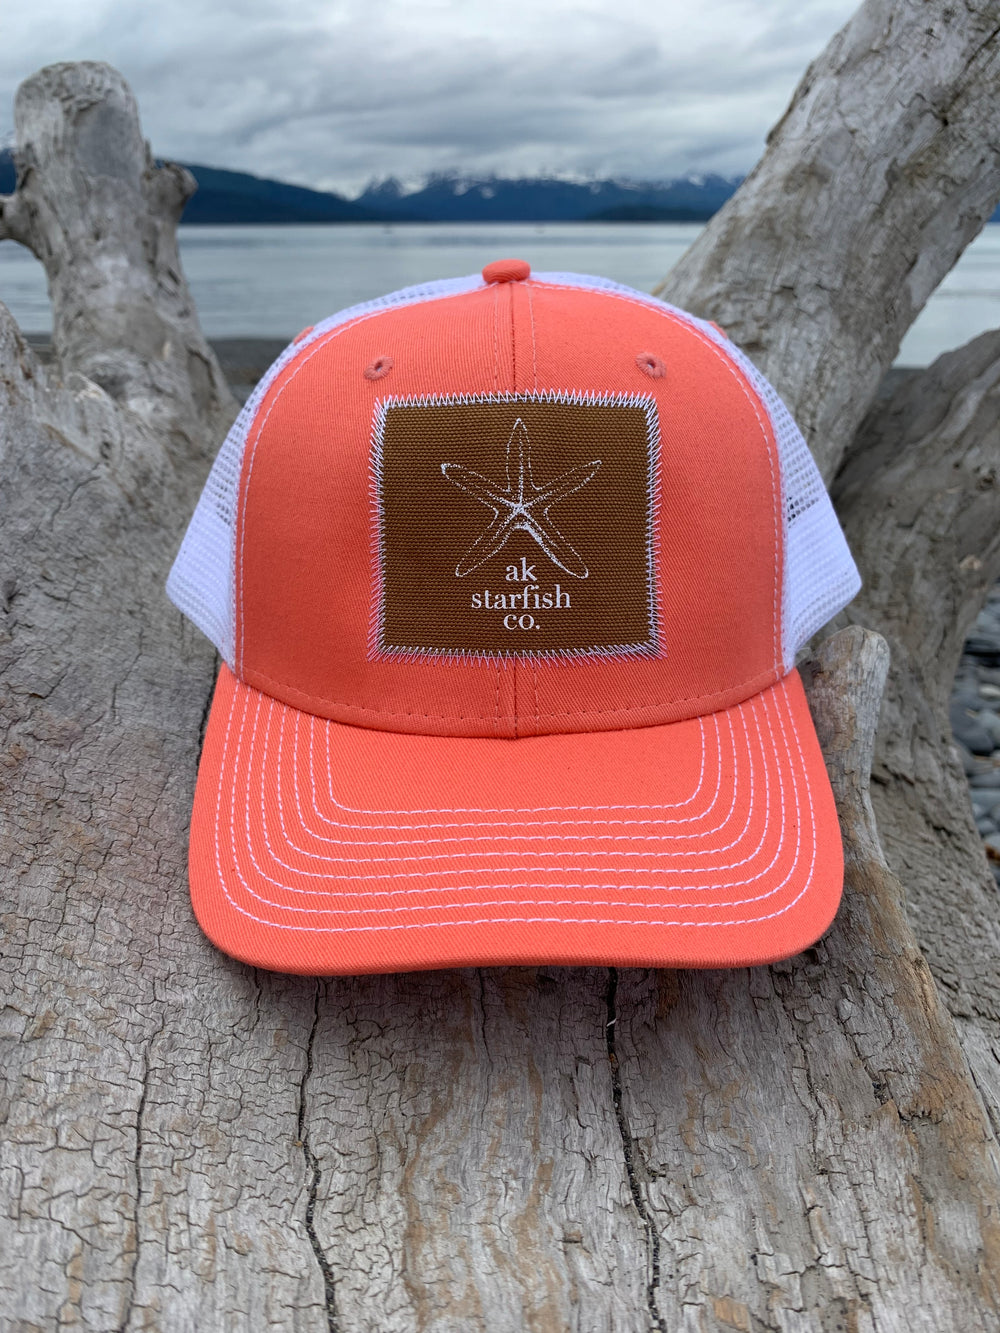 Shrimp AK Starfish Co. Patch Hat $35.00